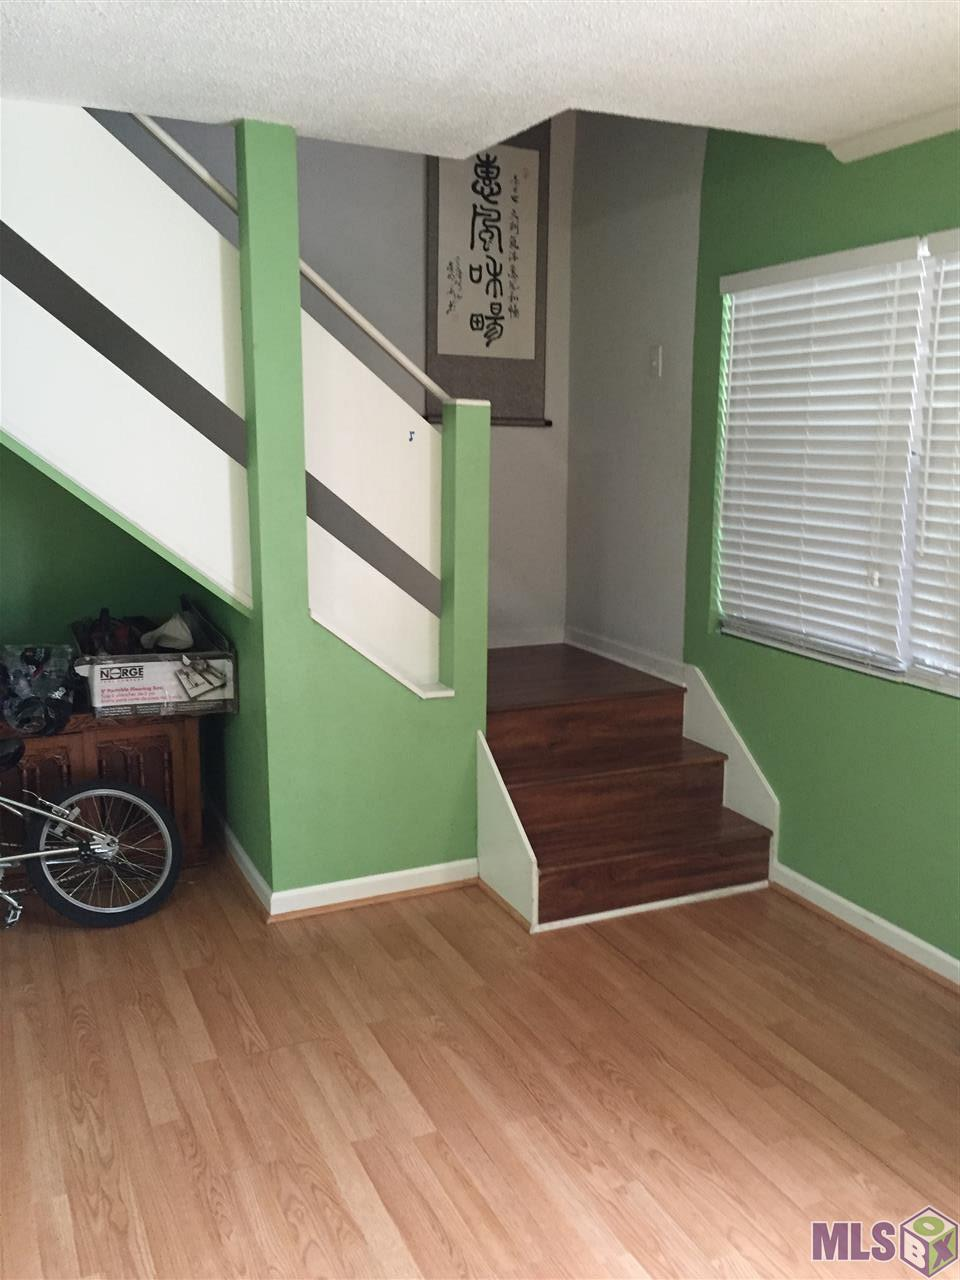 Enjoy being in this gated community, near LSU, and on the bus route! What a great value for a three bedroom two bath right near the pool. There is no carpet in the house! There are several huge walk in closets. It's perfect for LSU students looking for a convenient place to live.